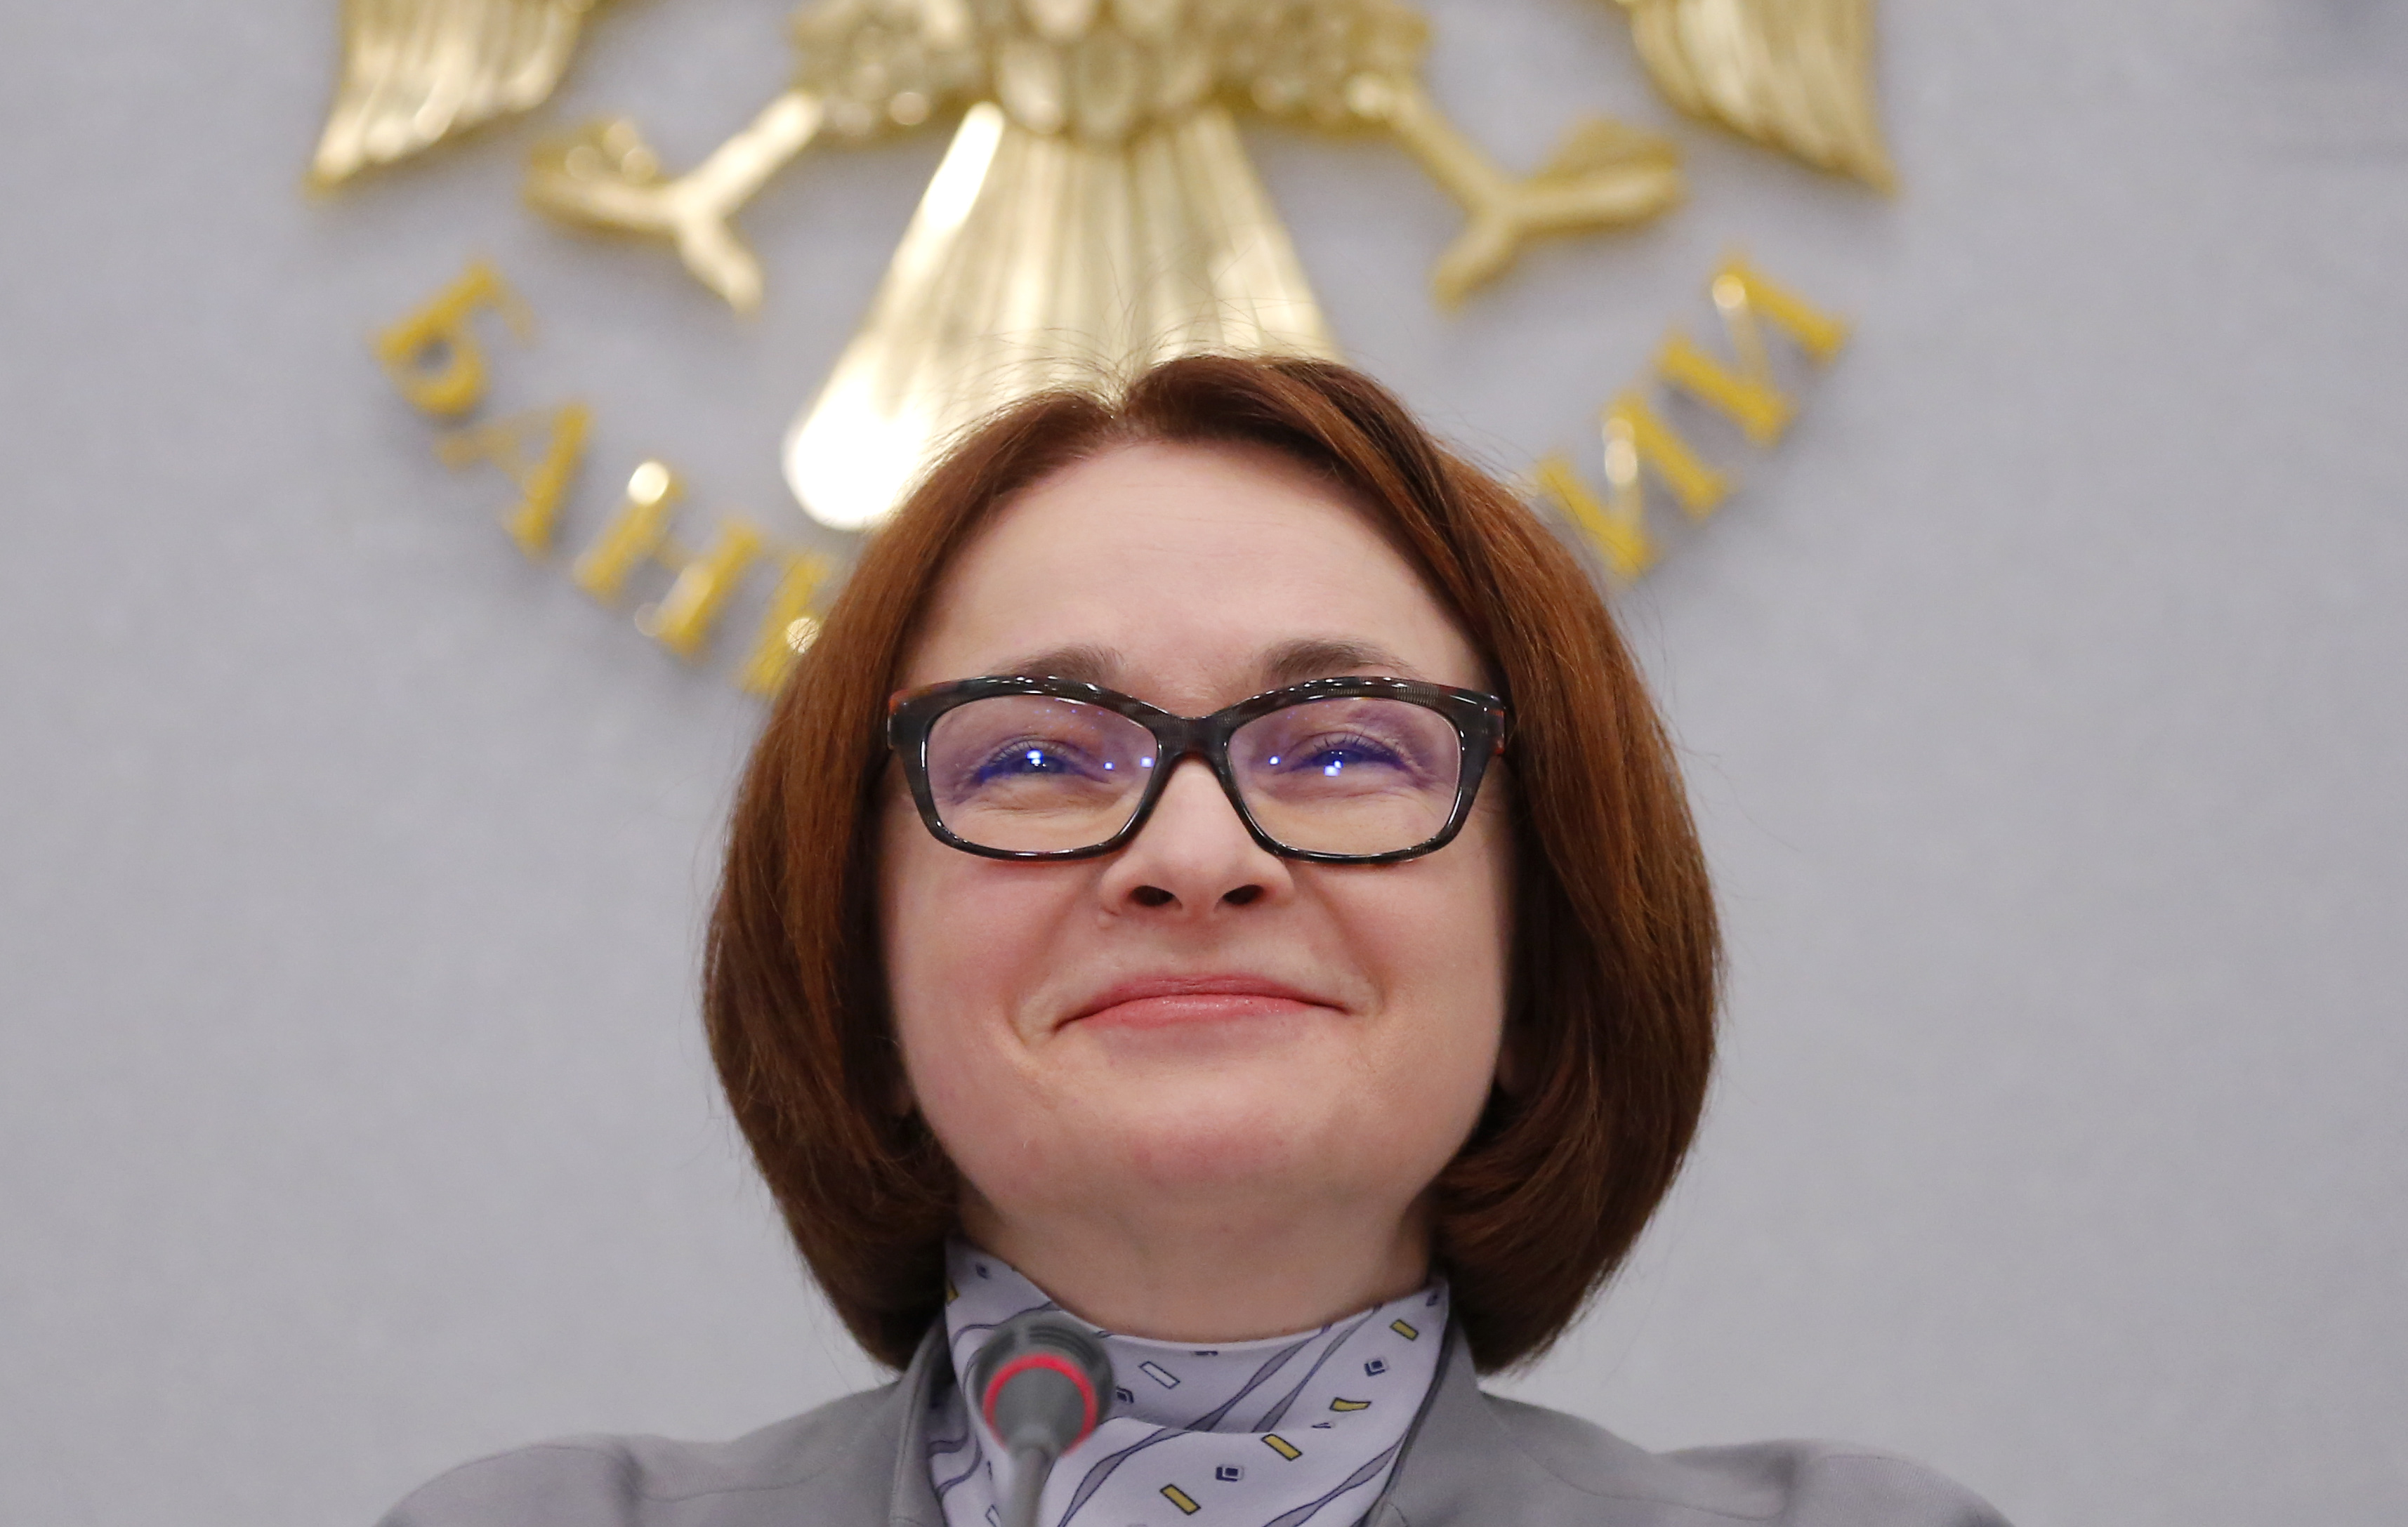 Russian central bank governor Elvira Nabiullina reacts during a news conference in Moscow, Russia, December 16, 2016. REUTERS/Maxim Shemetov - RTX2VBQ7